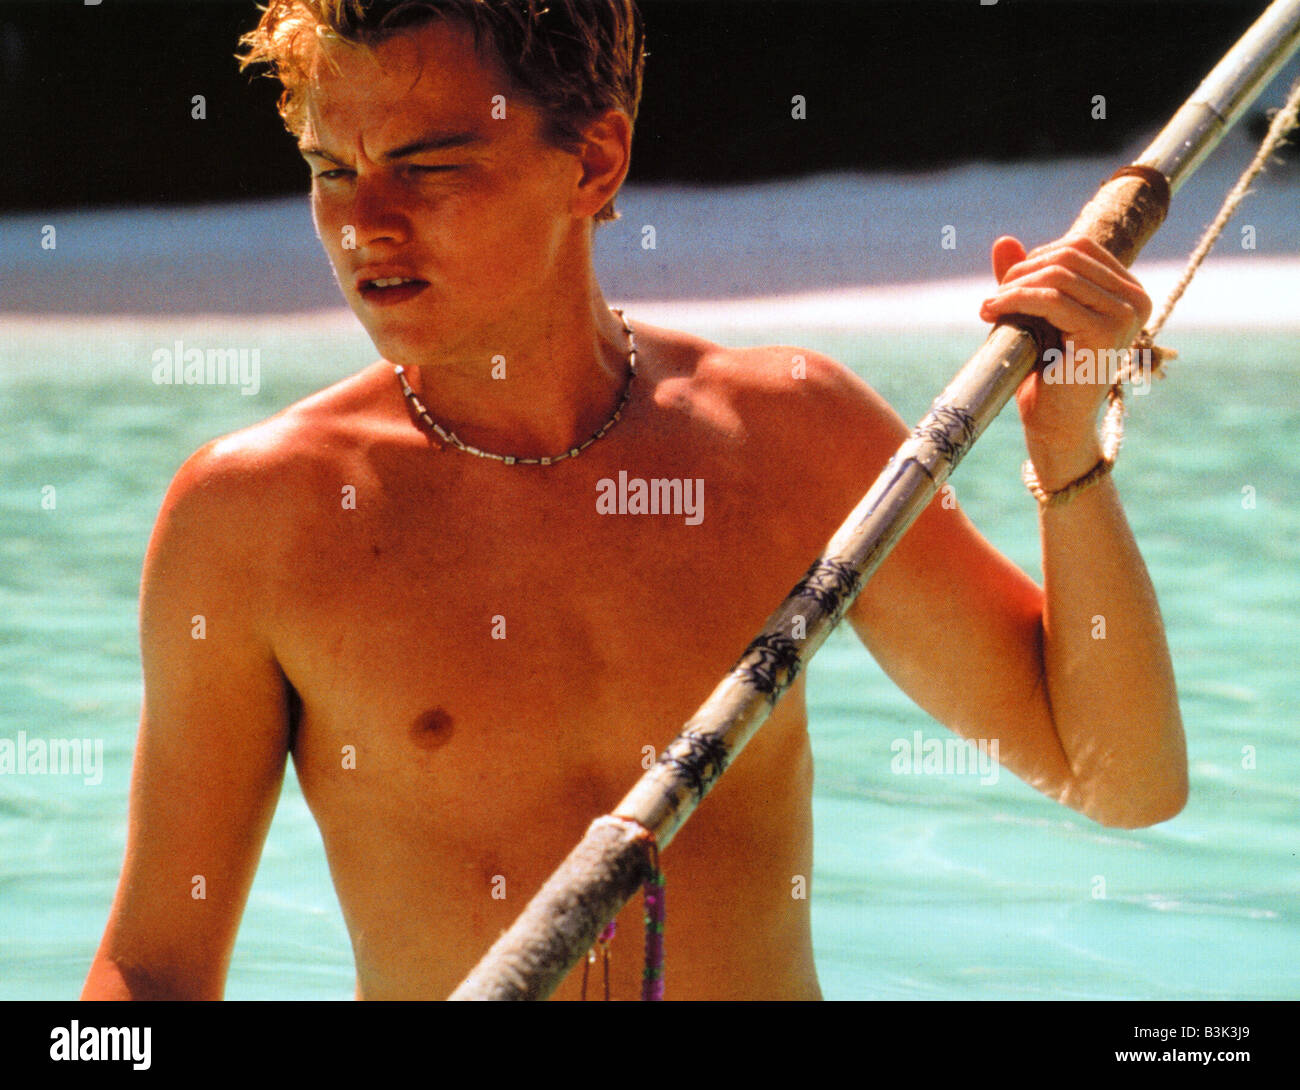 THE BEACH  2000 TCF film with Leonardo DiCaprio - Stock Image